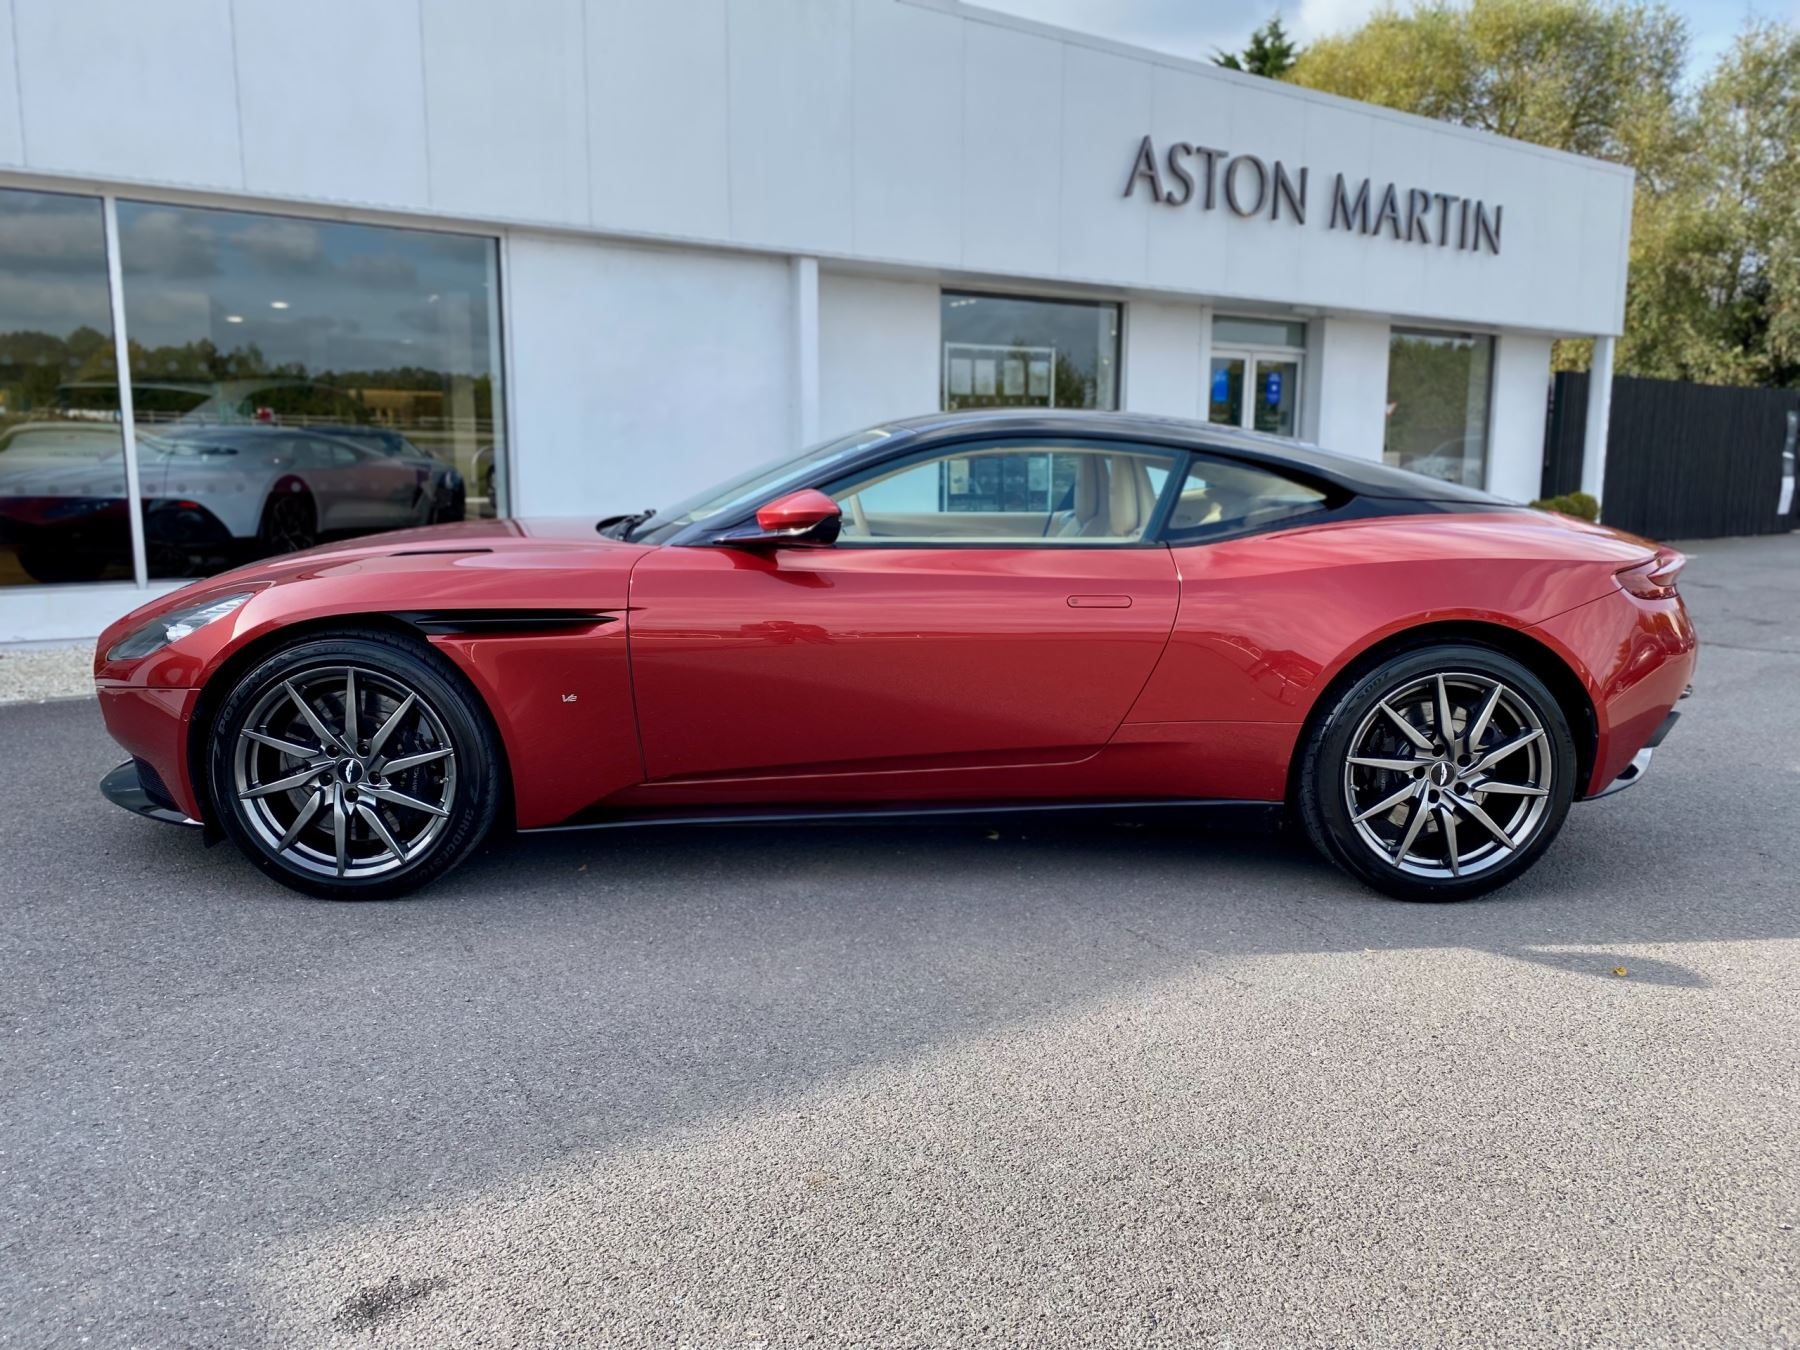 Aston Martin DB11 V12 Launch Edition Coupe. Bang & Olufsen Beosound Audio. Black brake calipers. Ventilated Seats image 4